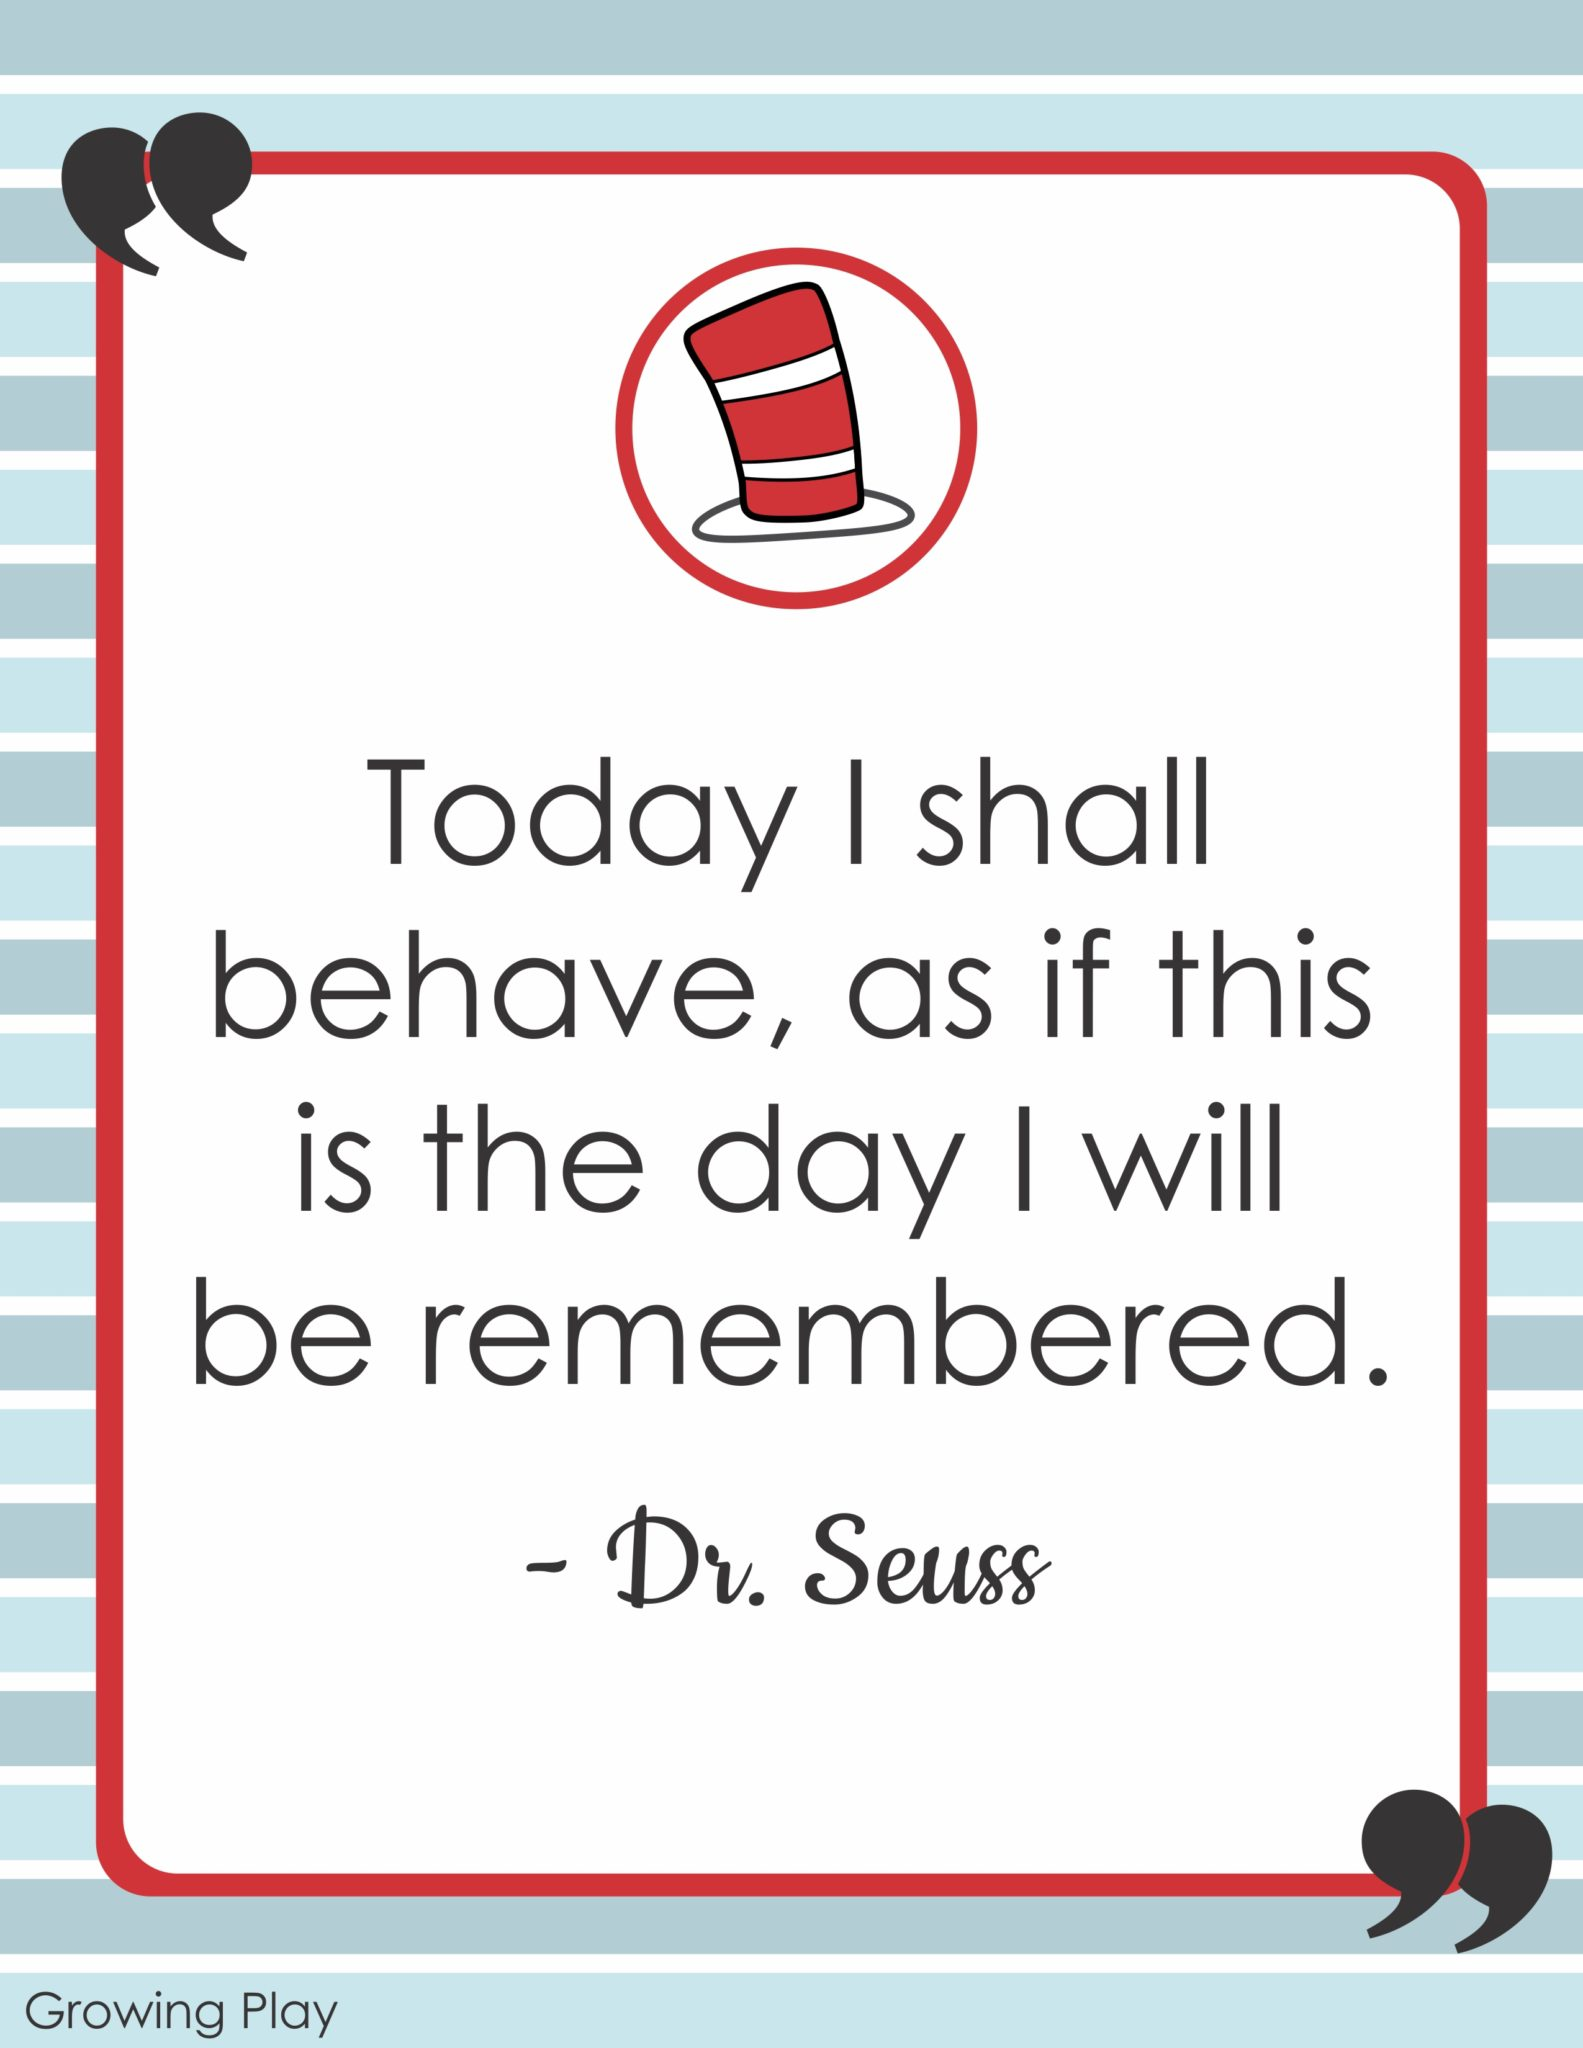 Dr Seuss Quotes Last Day Remembered